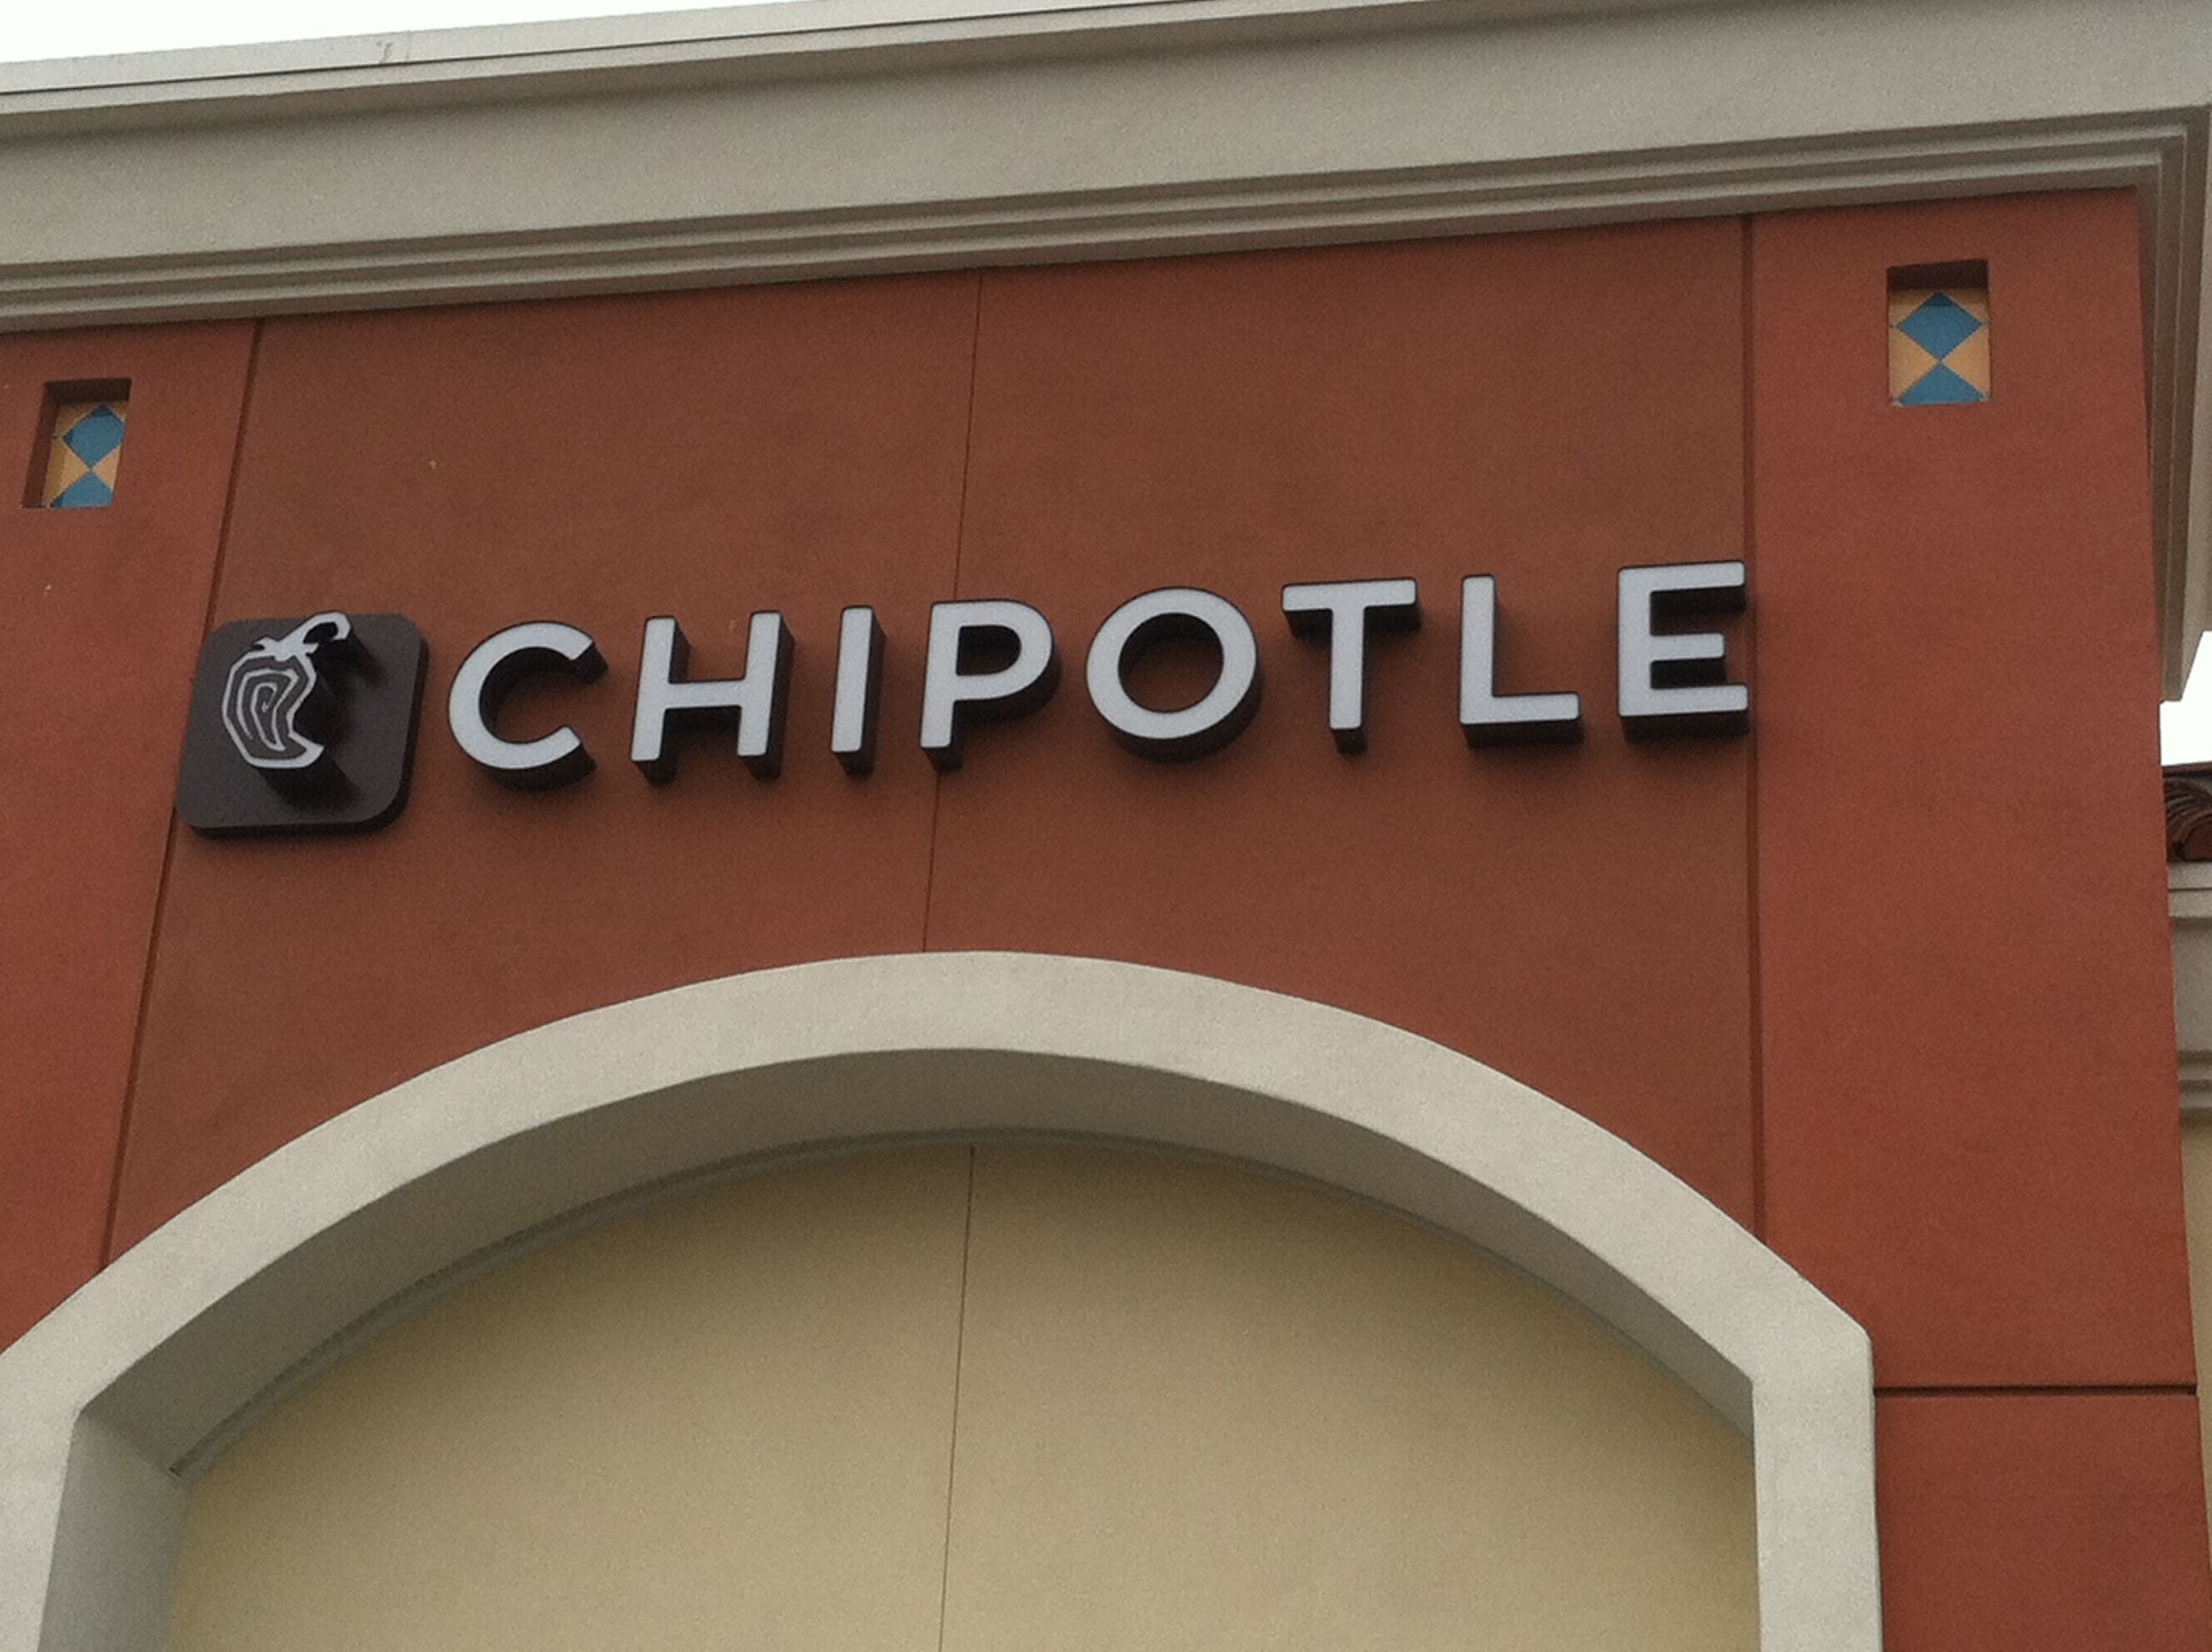 Chipotle | Eastvale Eateries | Pinterest | Chipotle, Restaurants and ...